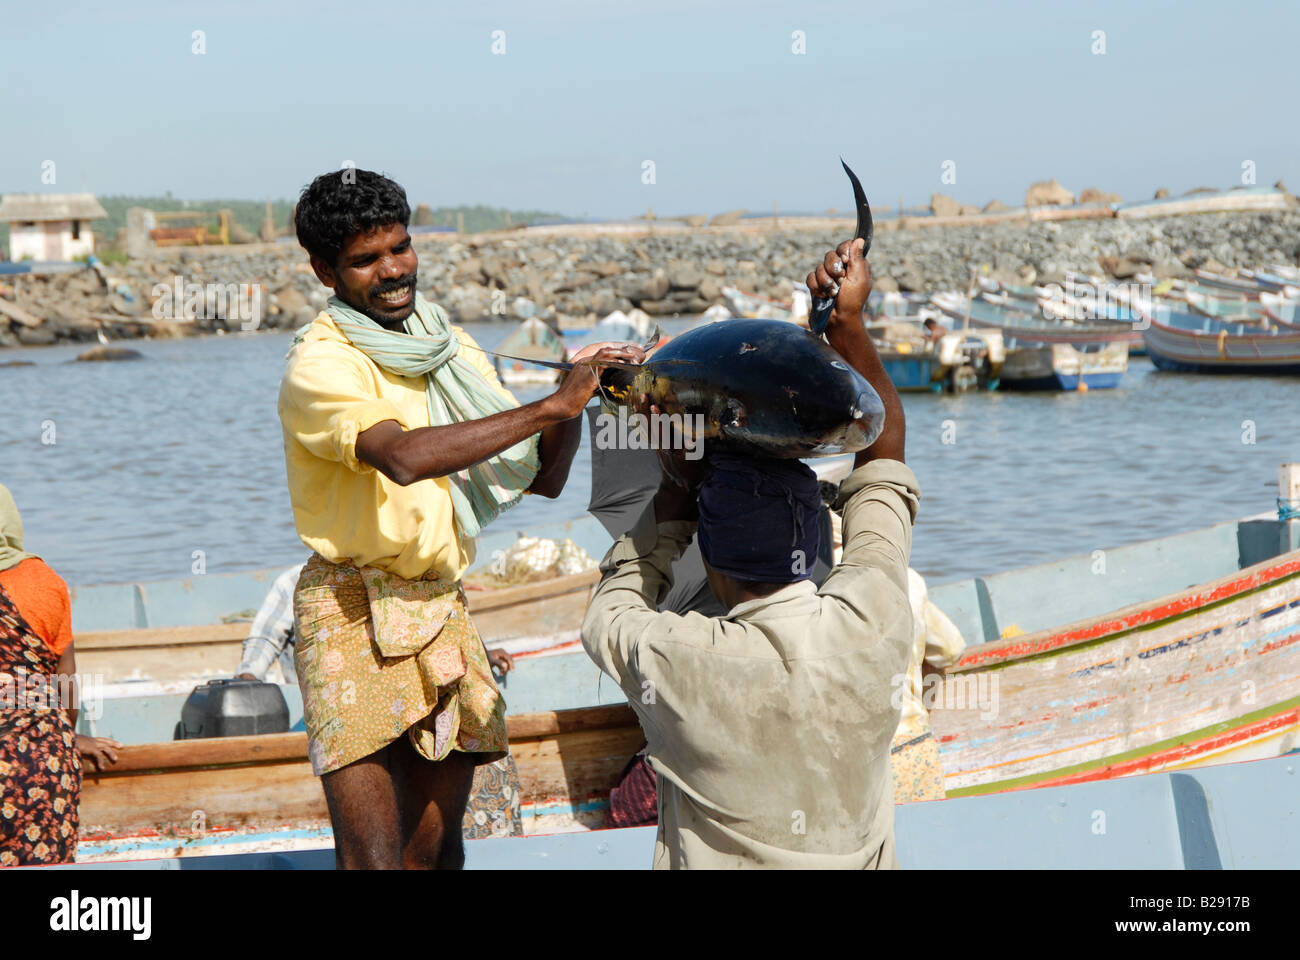 A fisherman handing over a big fish catch to fellow fishermen for sale at Vizhinjam,Kerala,india - Stock Image